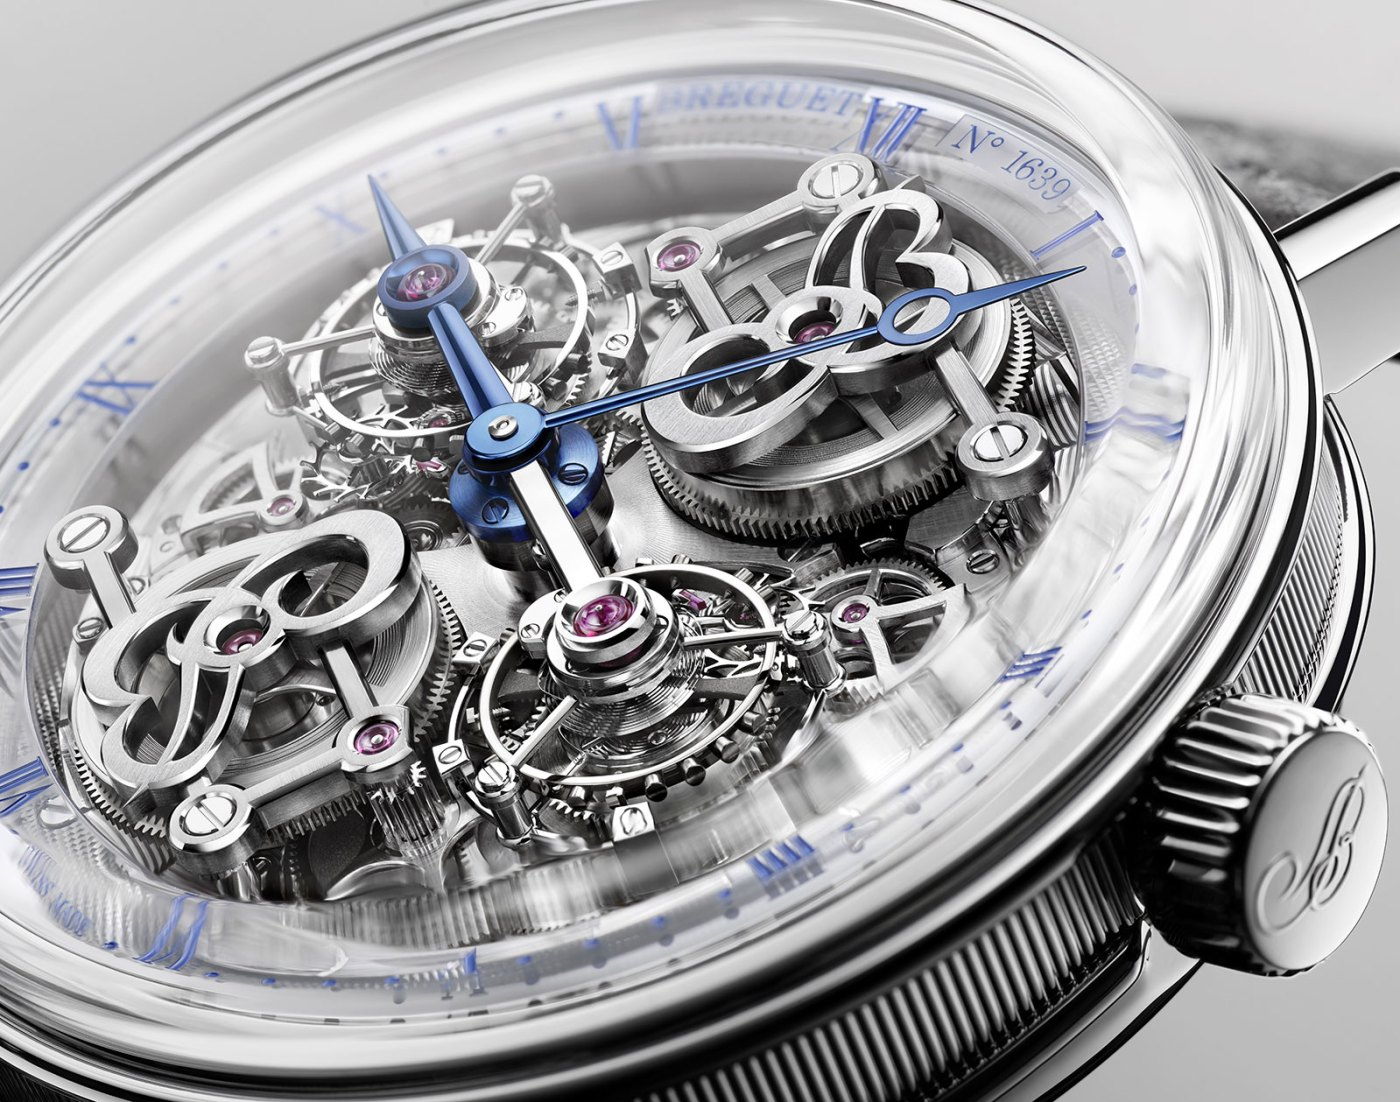 Breguet Classique Double Tourbillon 5345 Quai de l'Horloge close-up